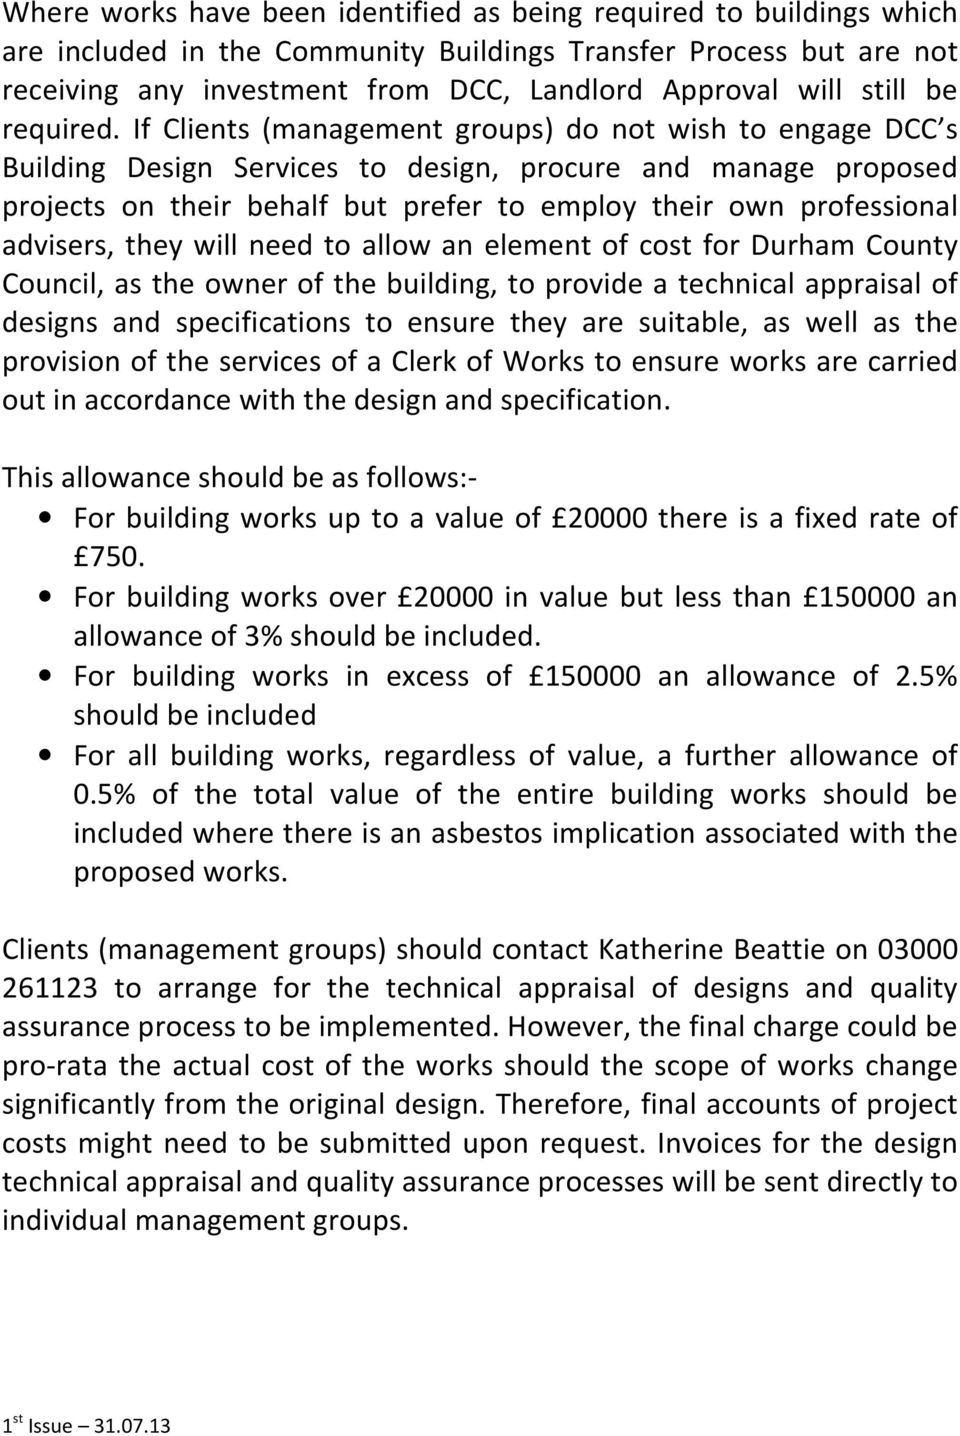 If Clients (management groups) do not wish to engage DCC s Building Design Services to design, procure and manage proposed projects on their behalf but prefer to employ their own professional